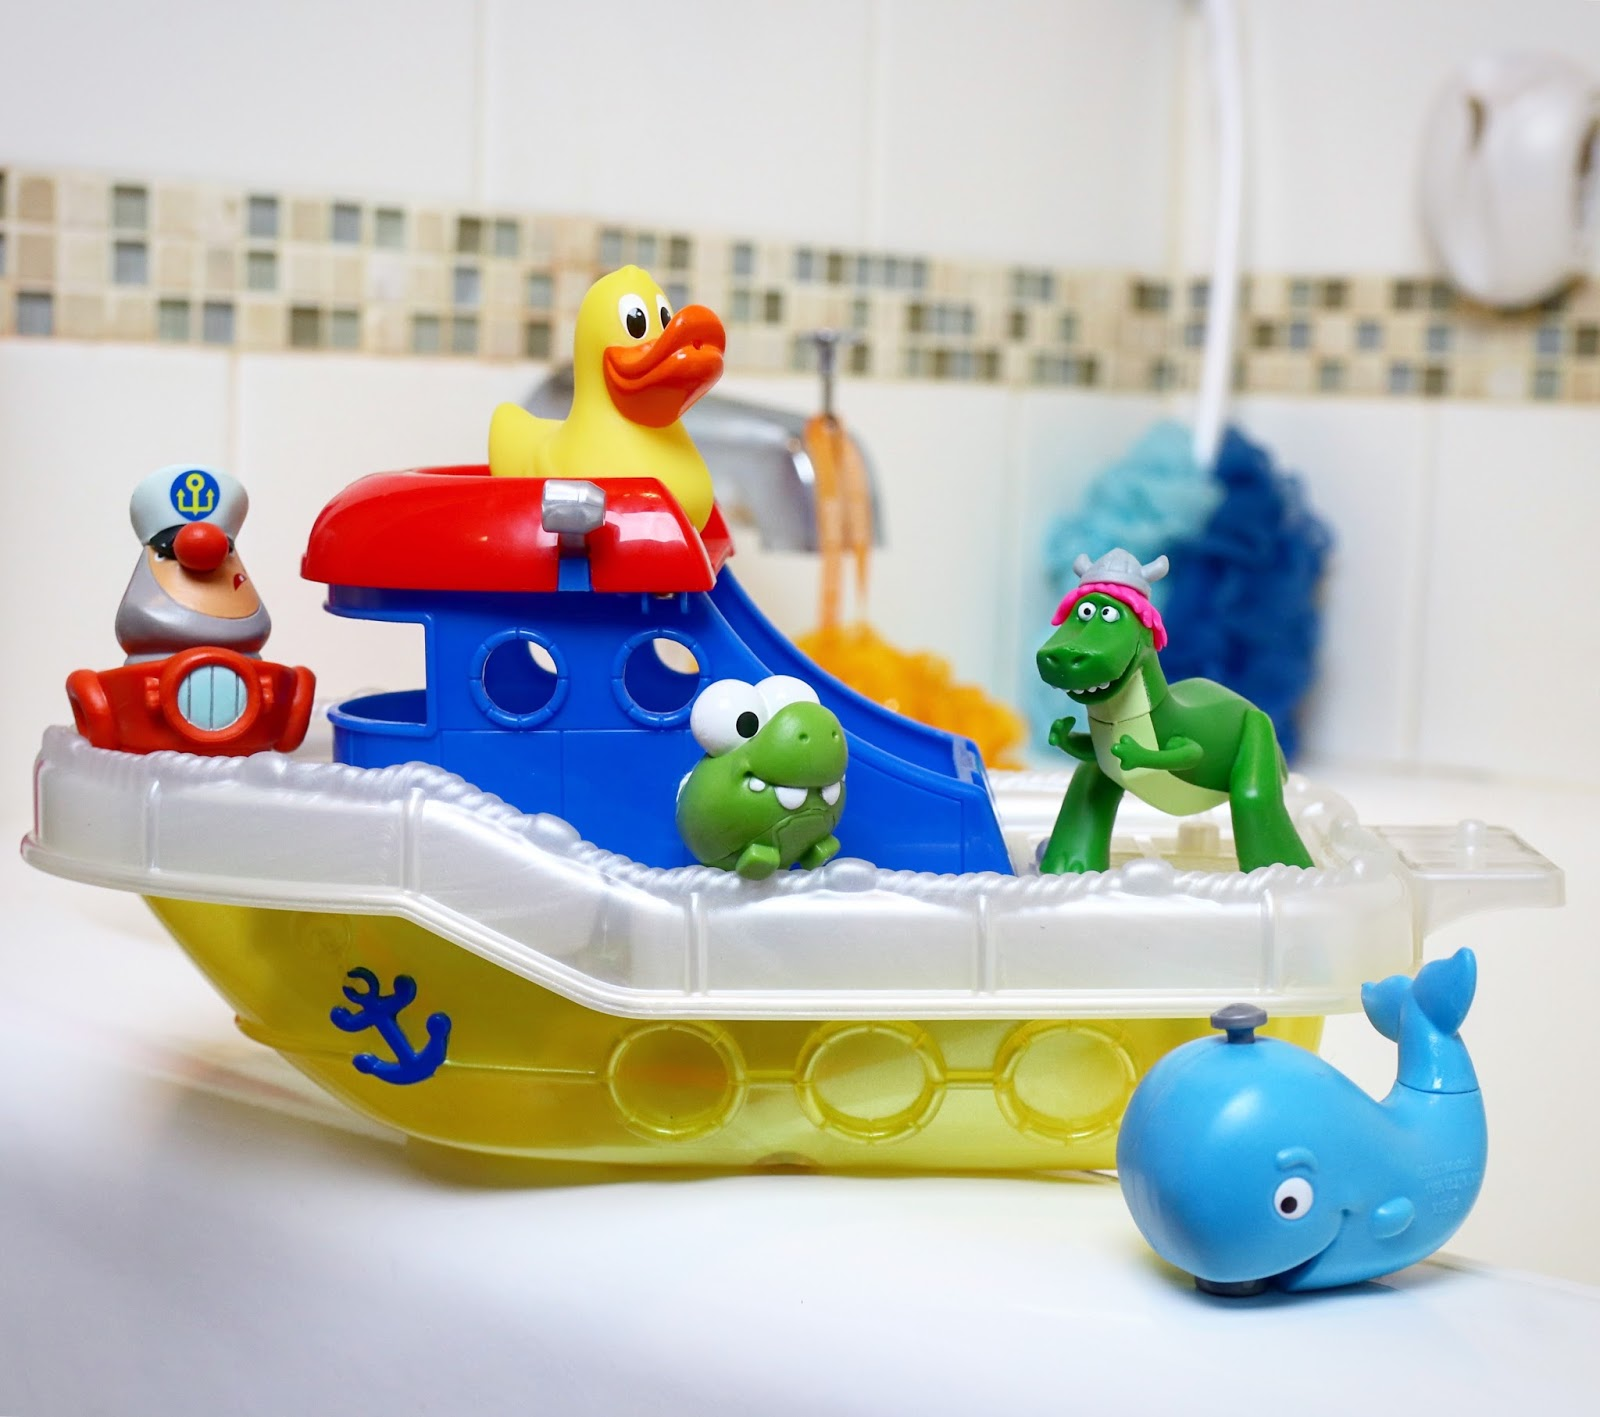 toy story partysaurus rex bath time buddies figures